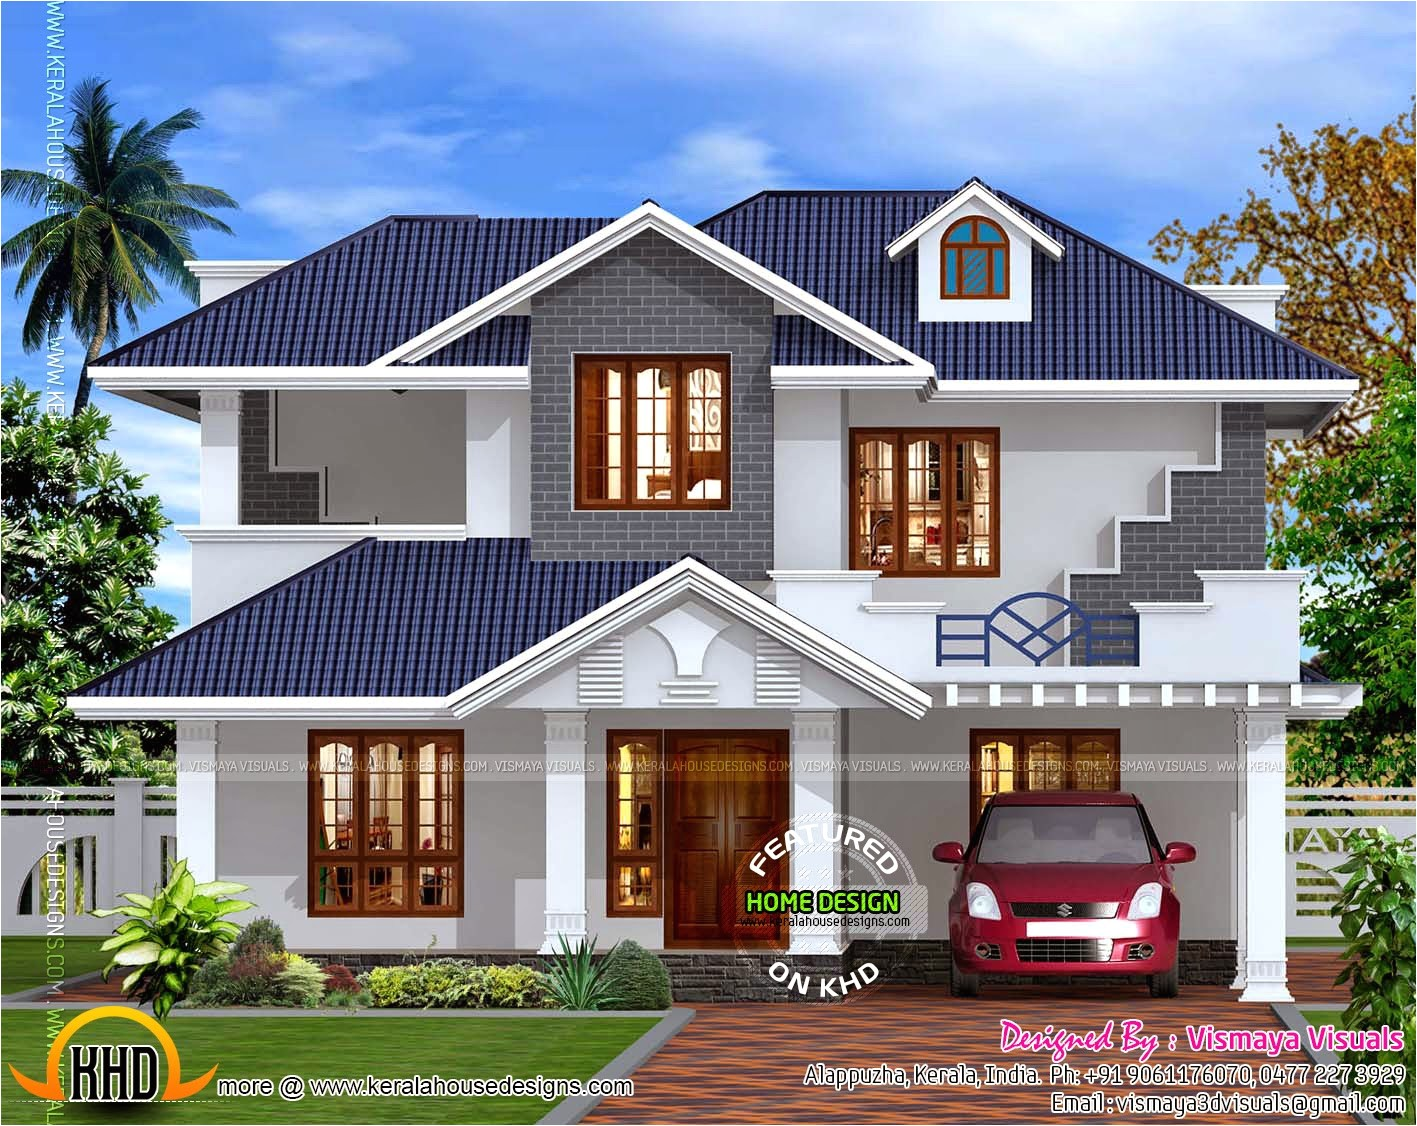 Kerala Style Home Design Plans Kerala Style Villa Exterior Kerala Home Design and Floor